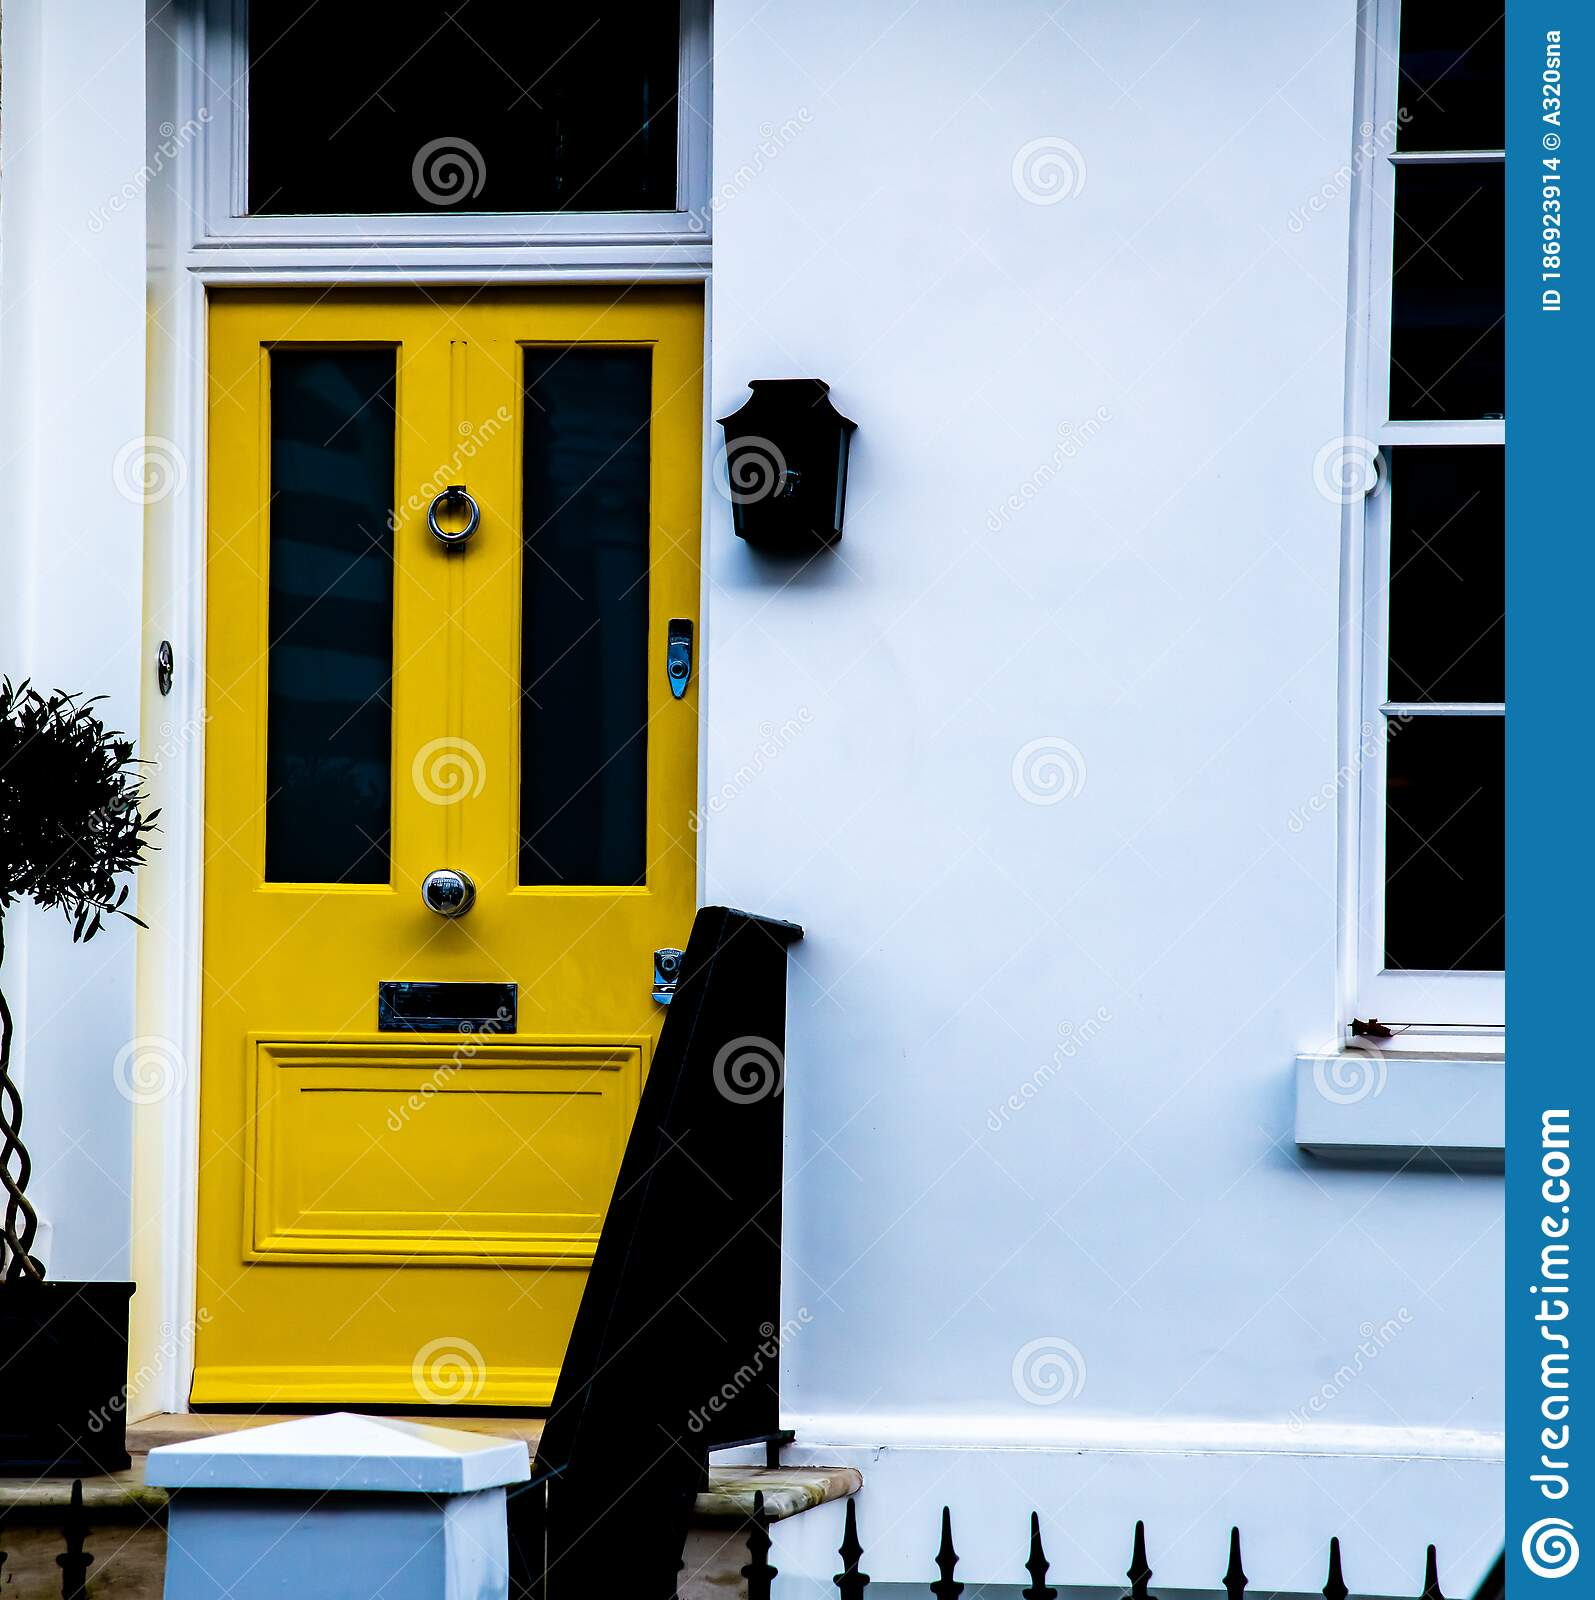 A Bright Yellow Door On A White Building Stock Photo Image Of Yellow Brilliant 186923914